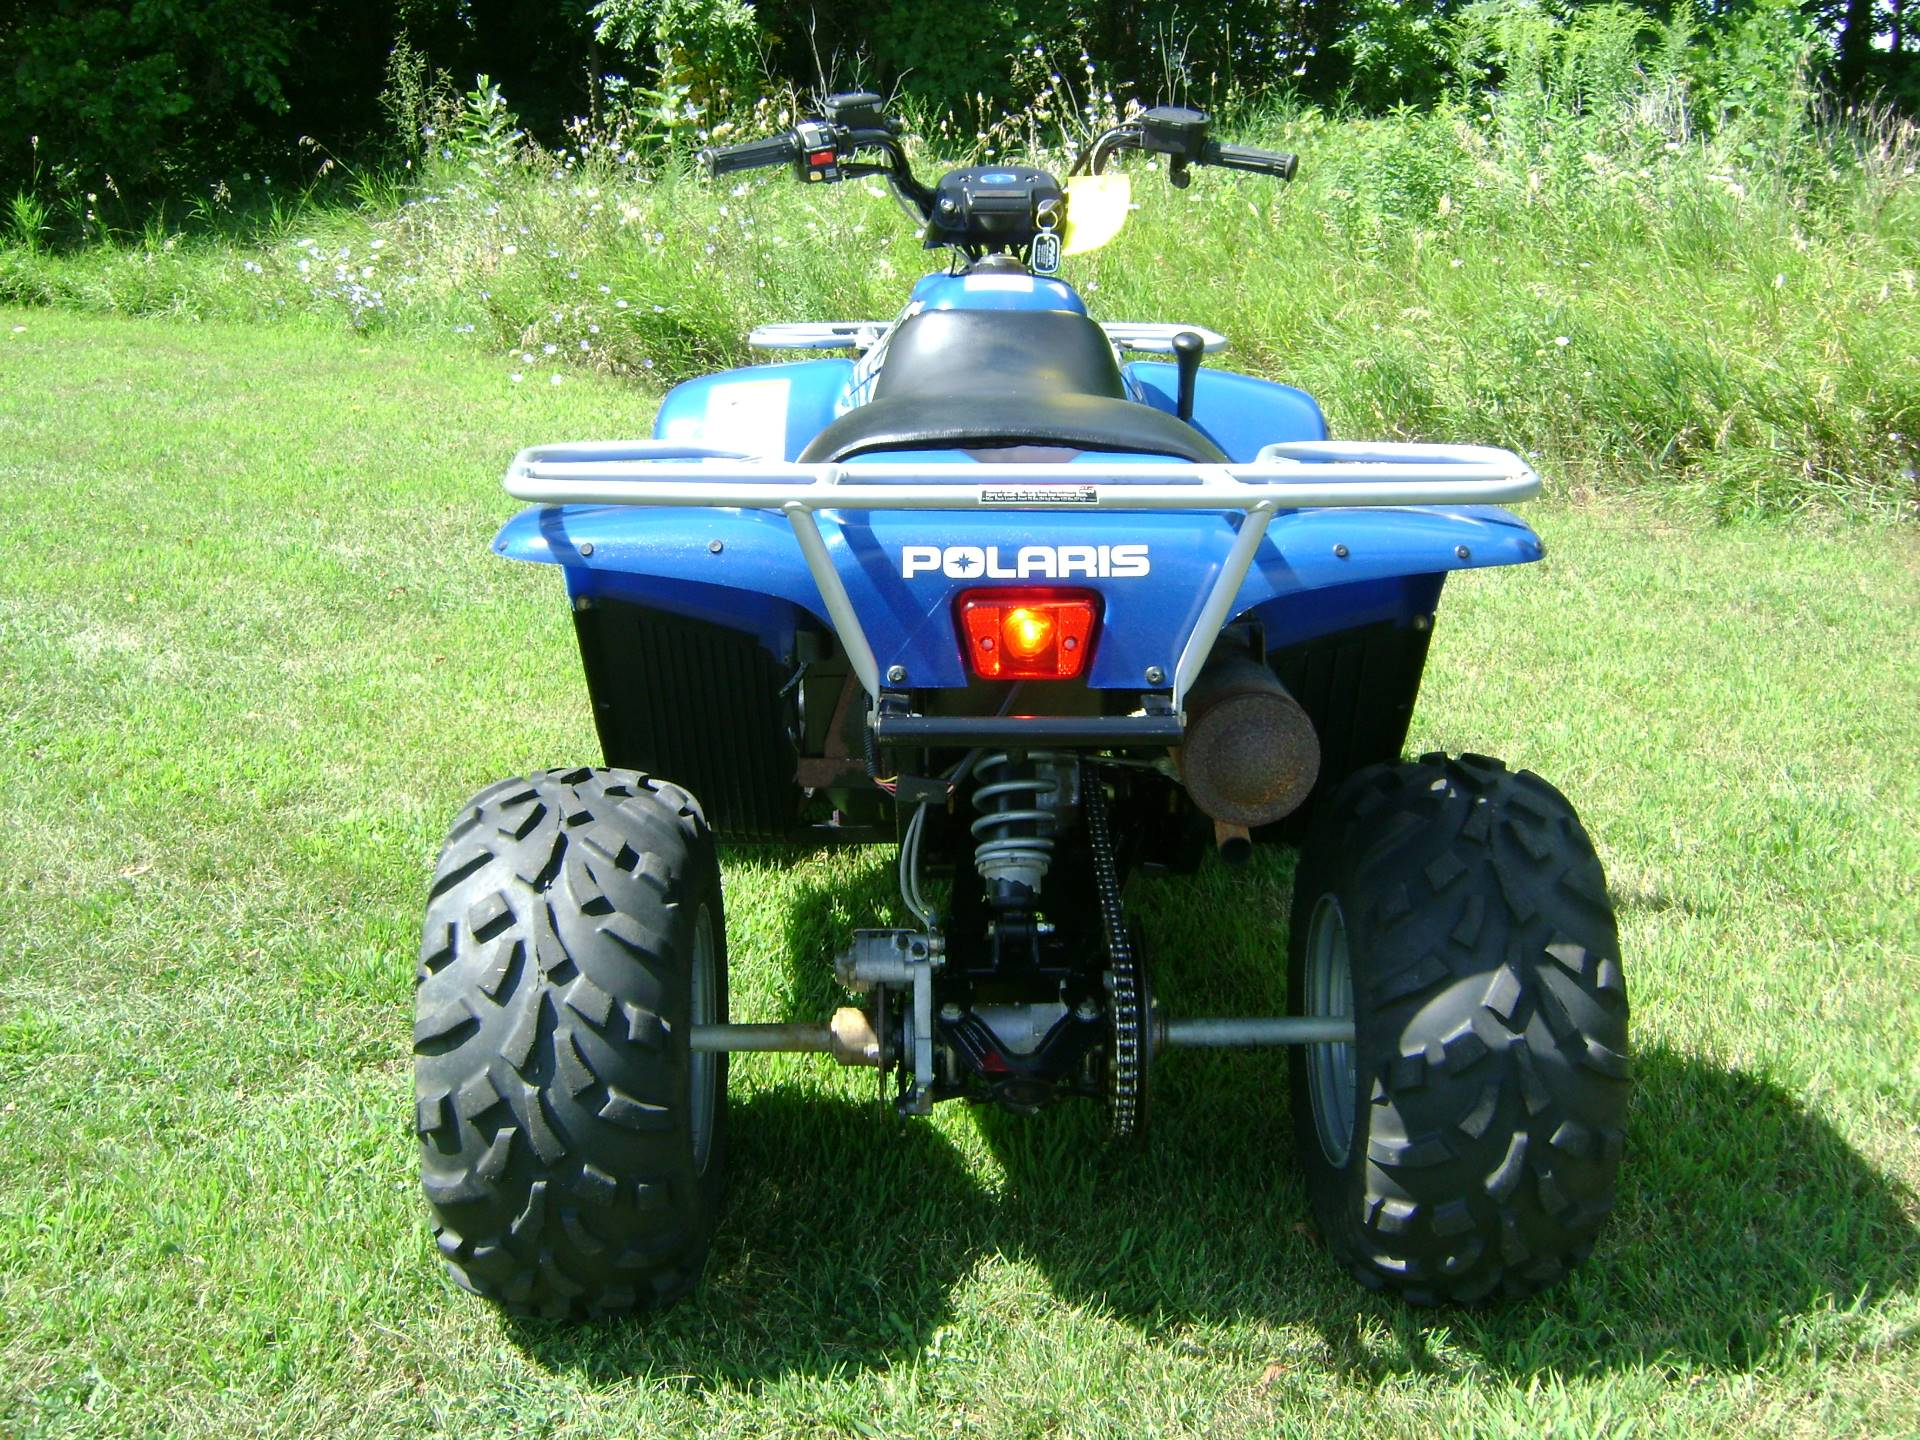 2004 Polaris TRAILBOSS 330 in Freeport, Illinois - Photo 3